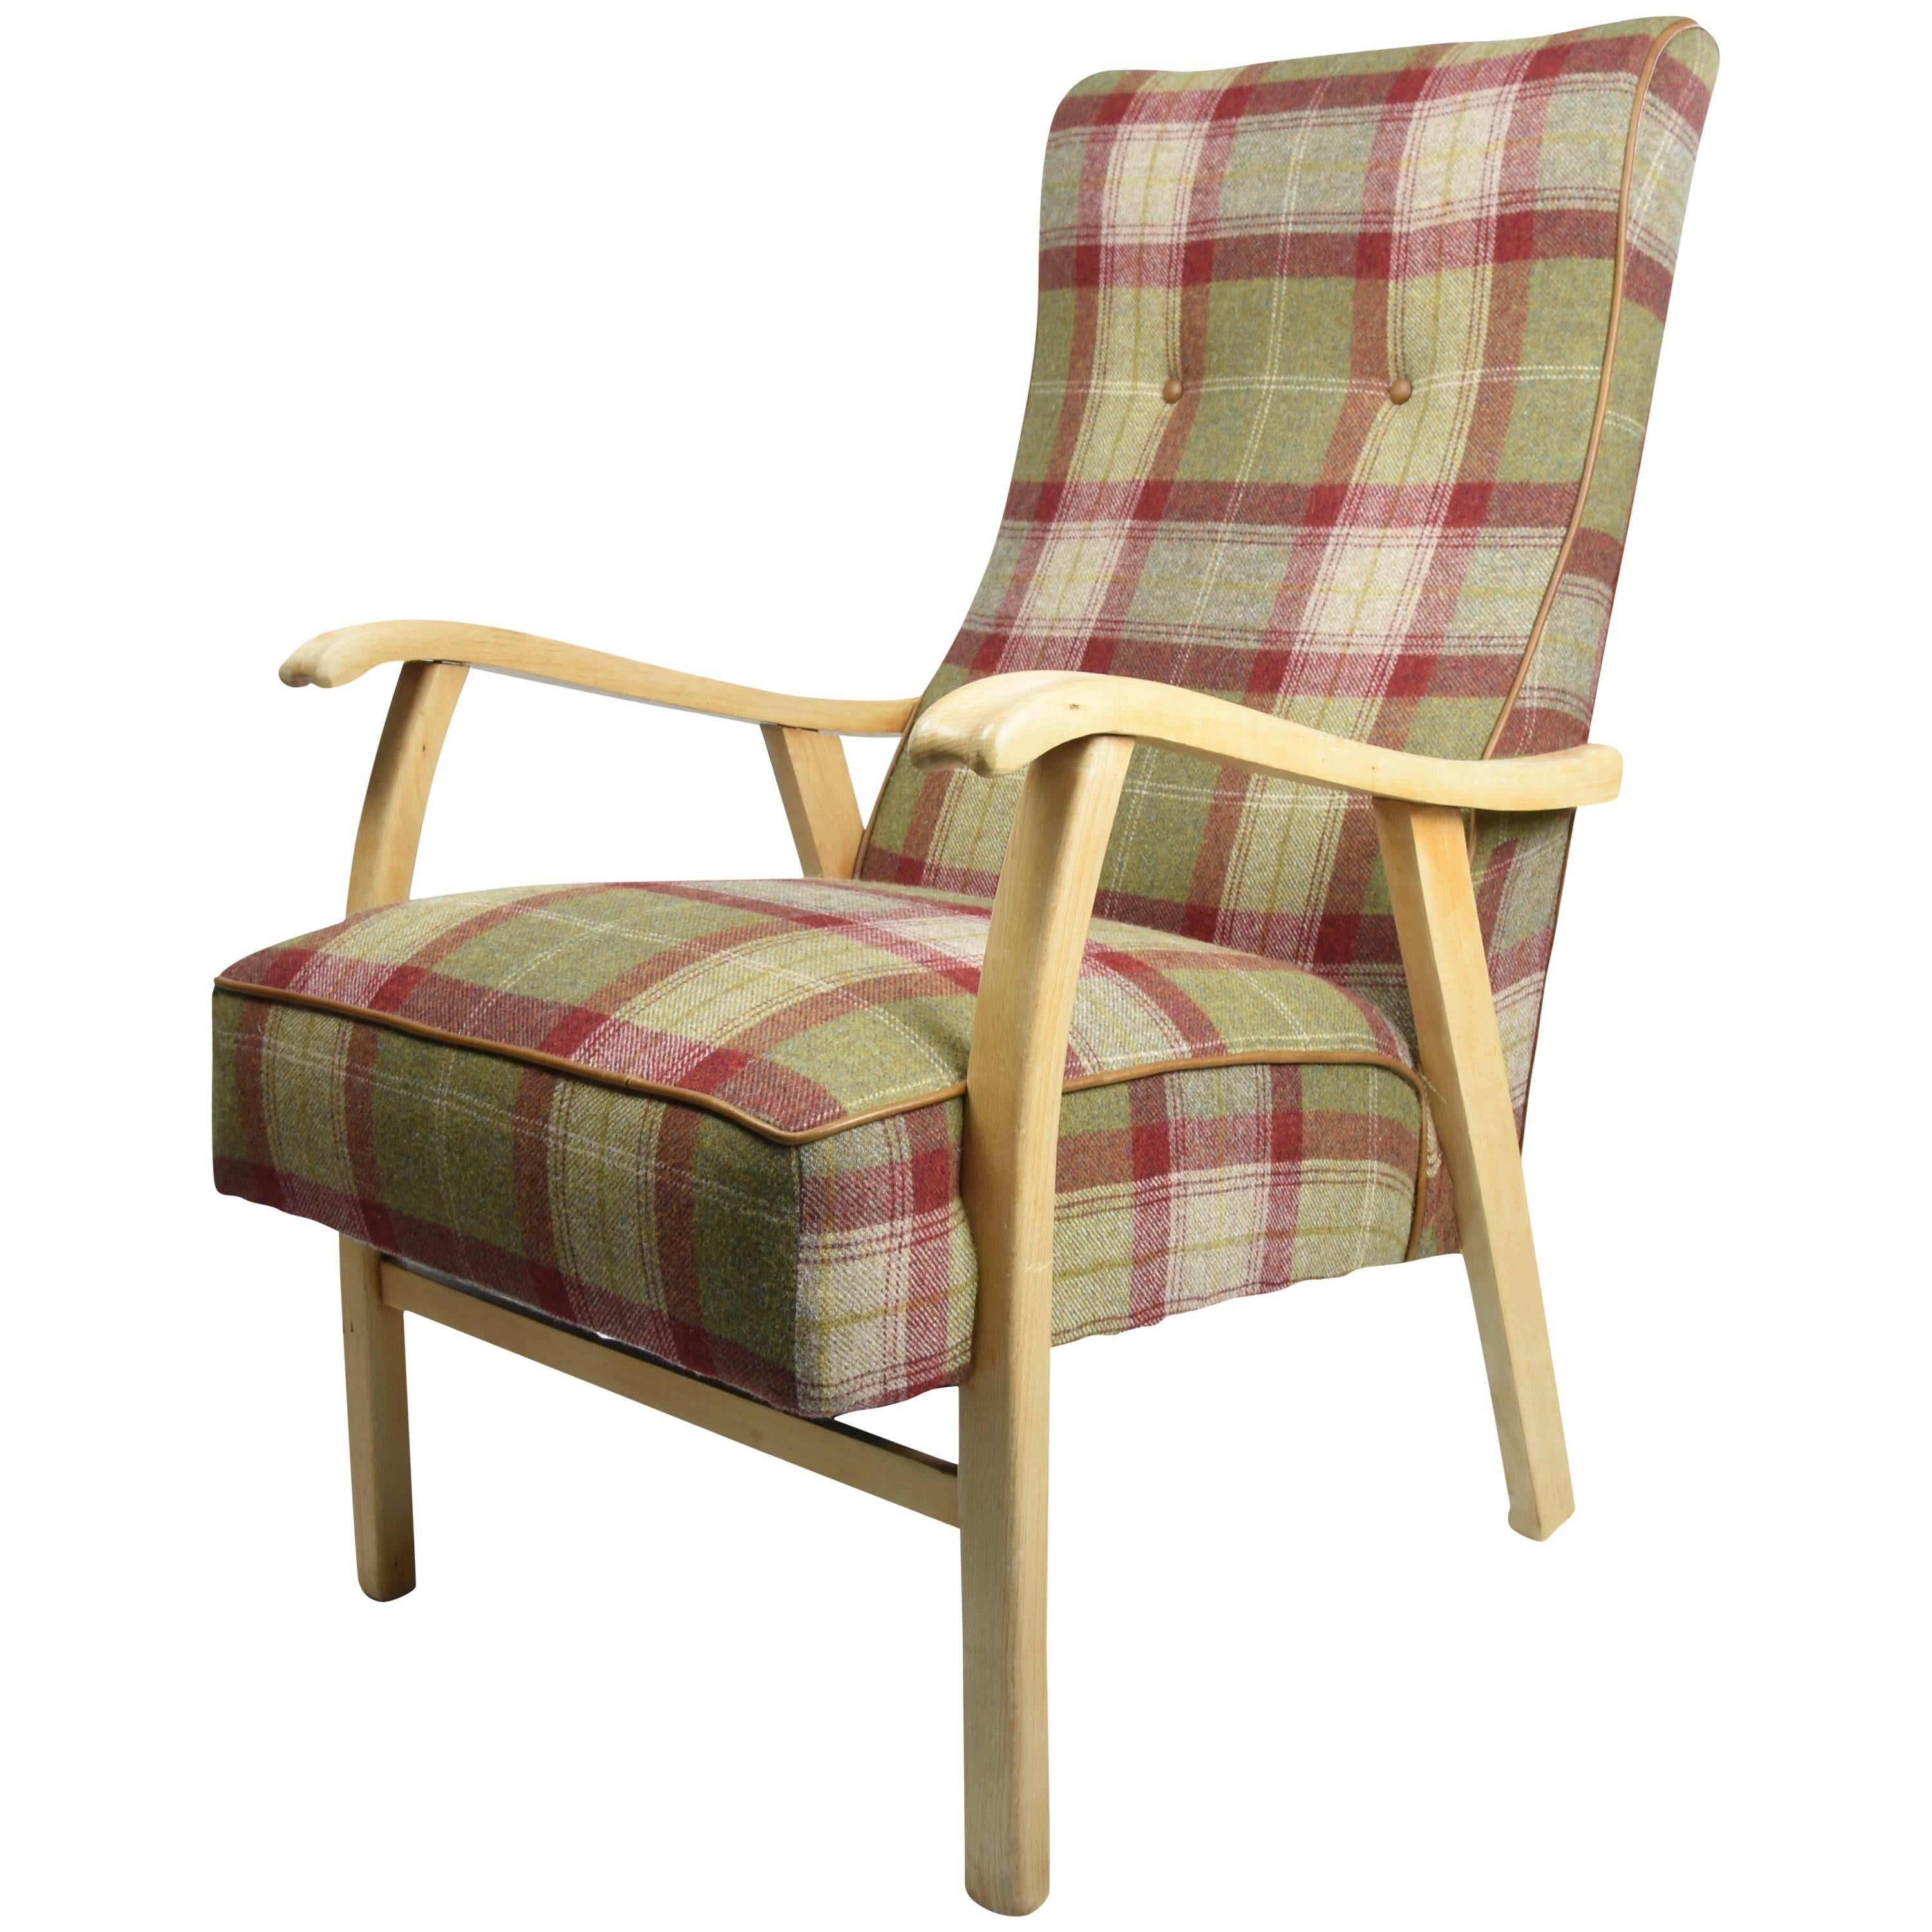 Genial Parker Knoll Shabby Chic Armchair For Sale